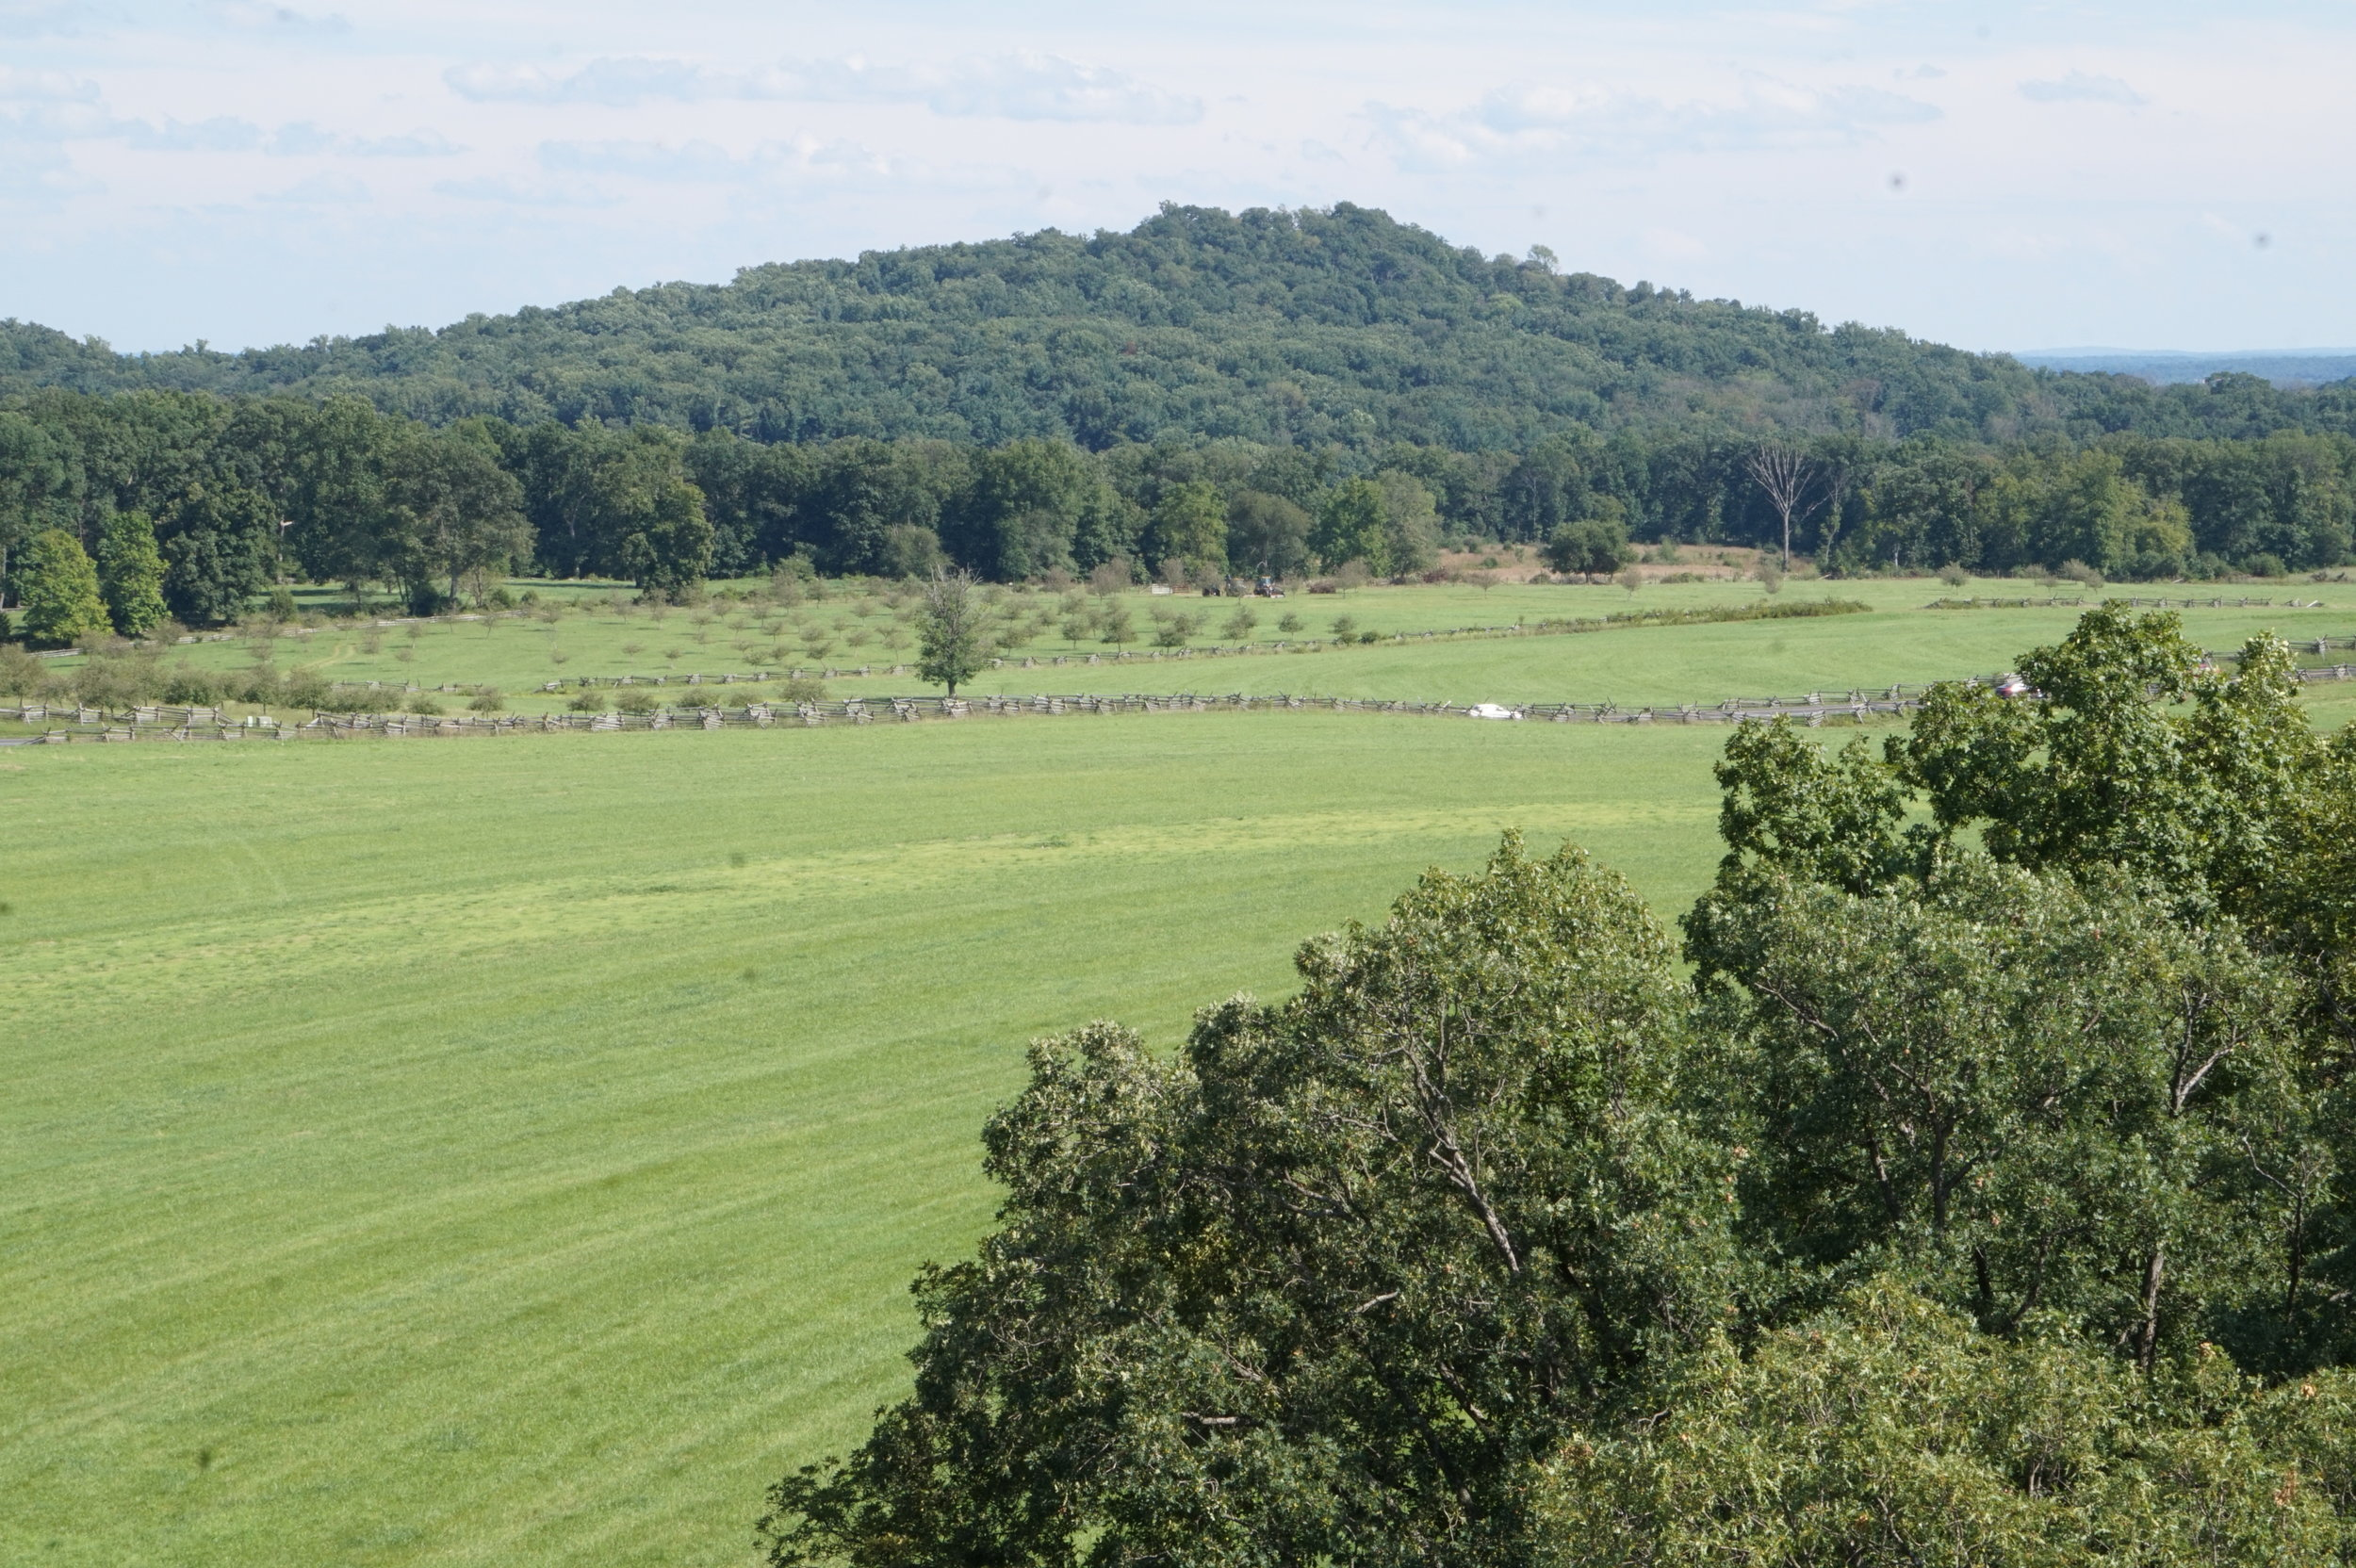 Big Round Top, viewed from the observation tower near Millerstown Road.